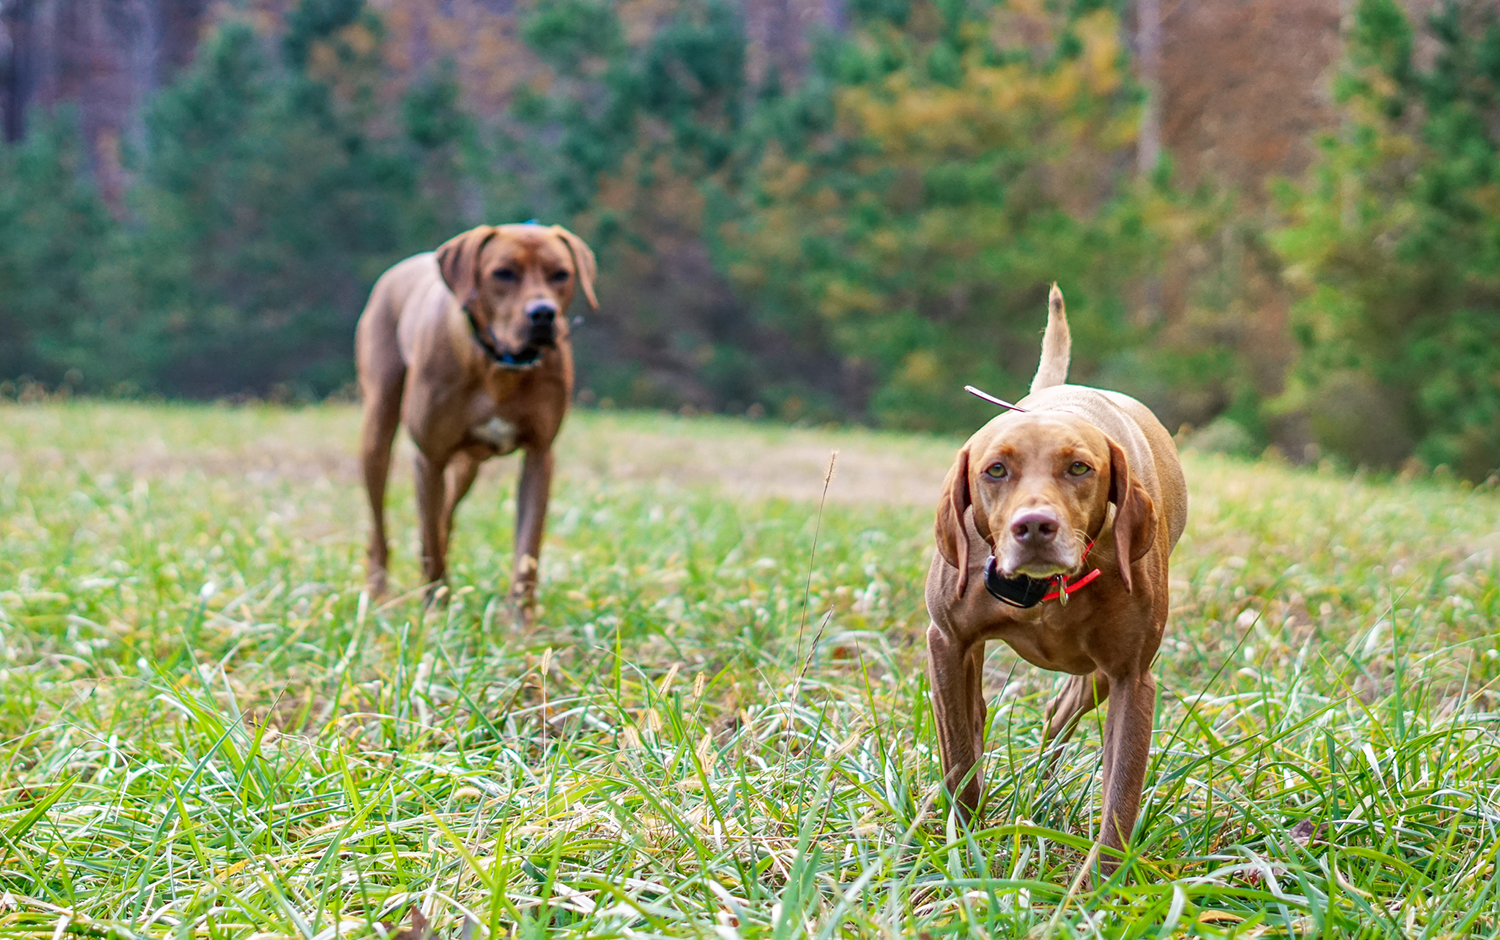 Vizsla vs Ridgeback: What Are the Differences?